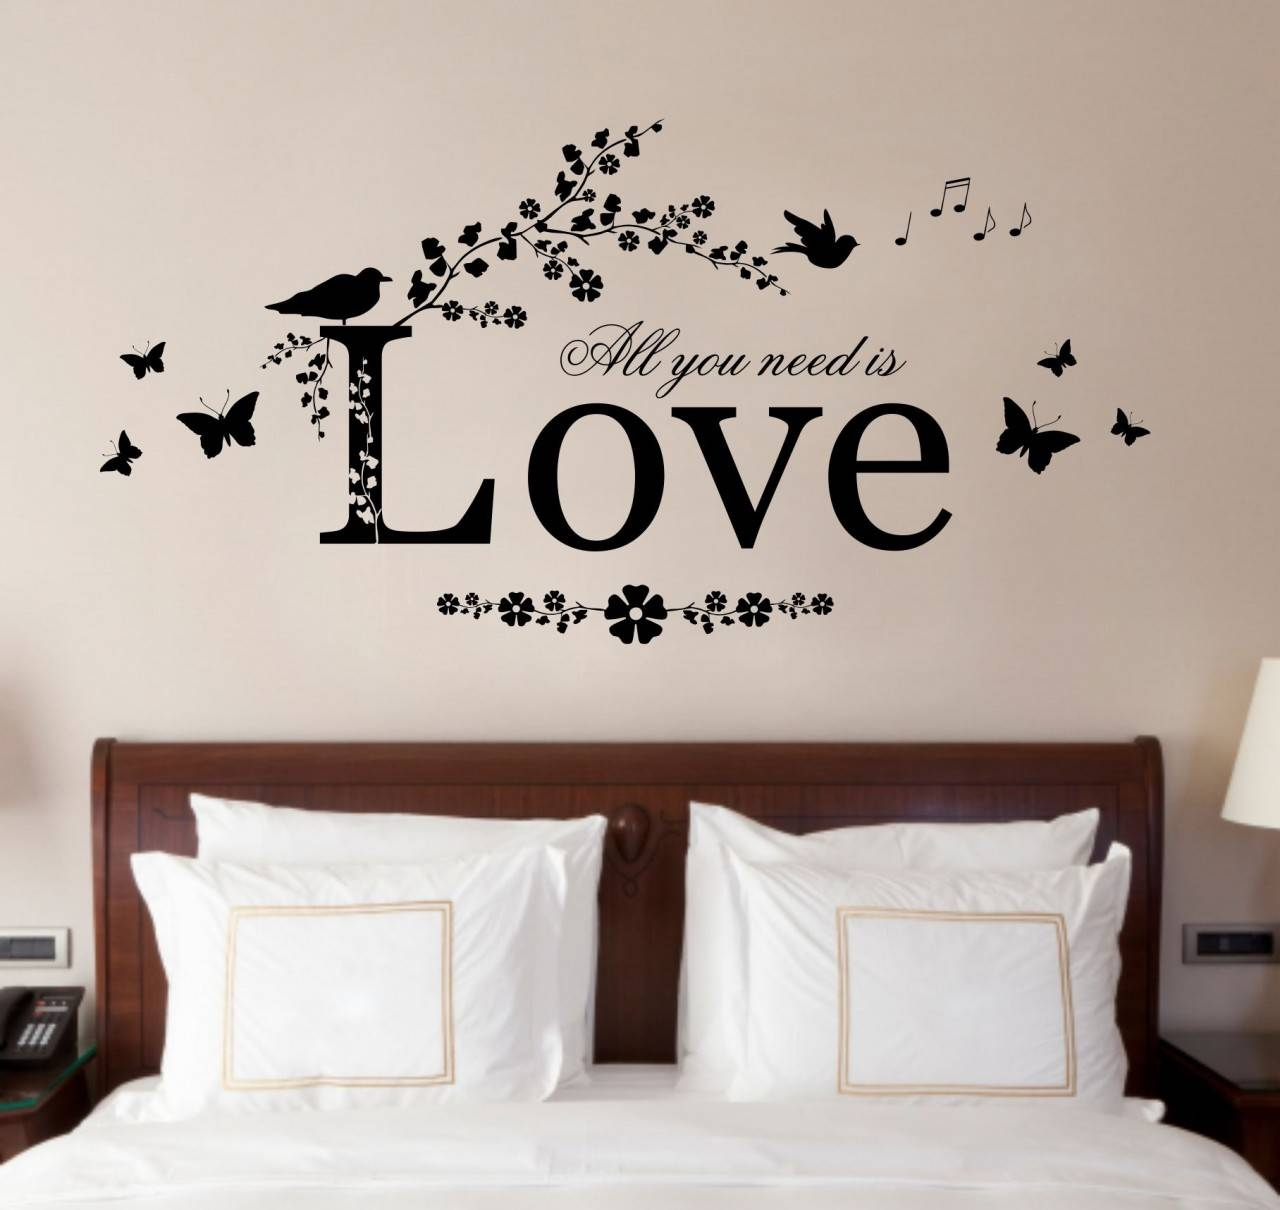 Bedroom Wall Art – Best Home Design Ideas – Stylesyllabus Throughout Latest Bed Wall Art (View 7 of 25)